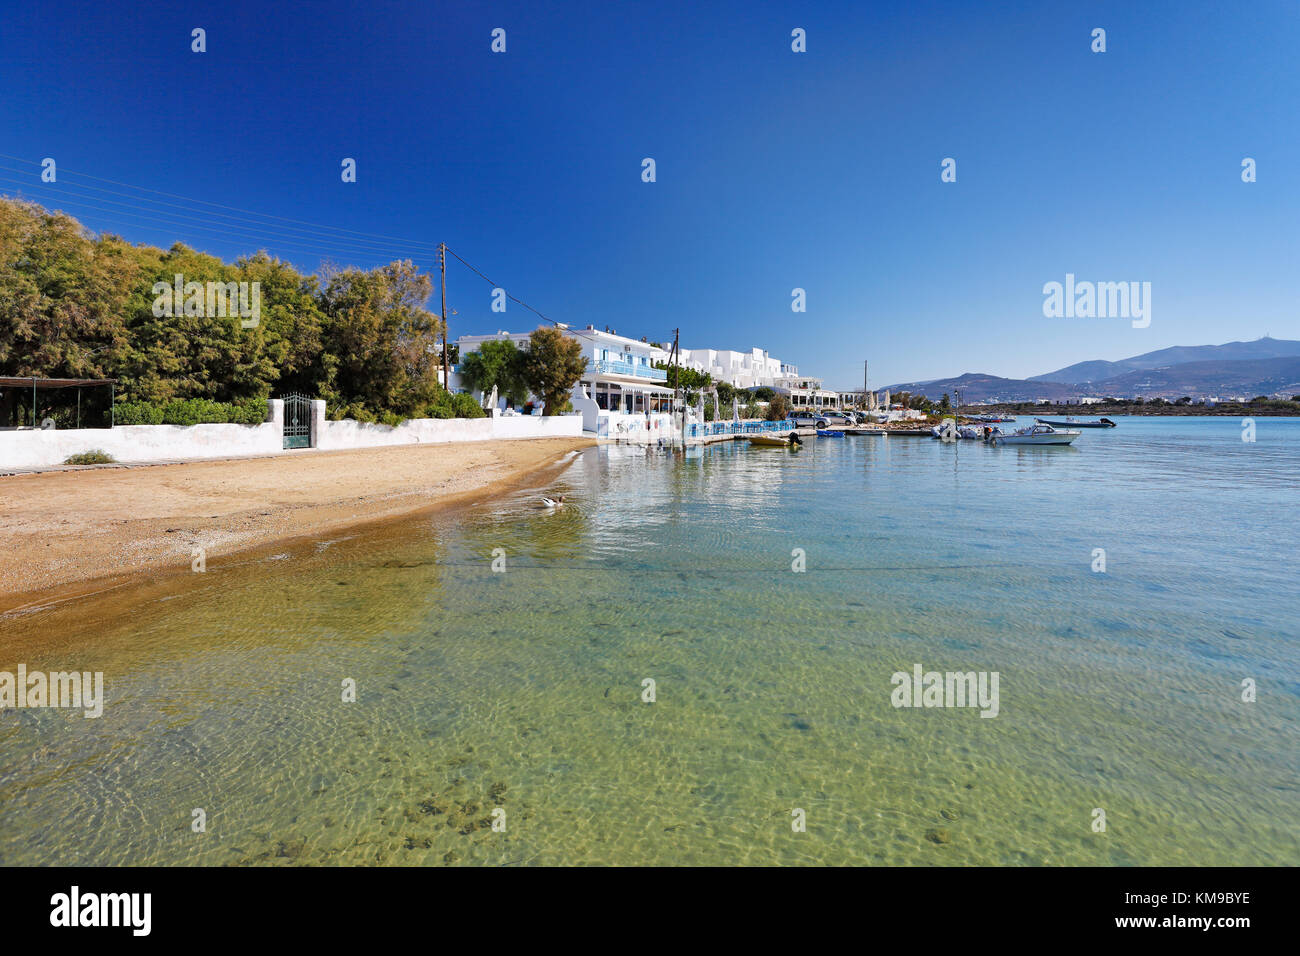 A beach at the port of Antiparos island, Greece - Stock Image